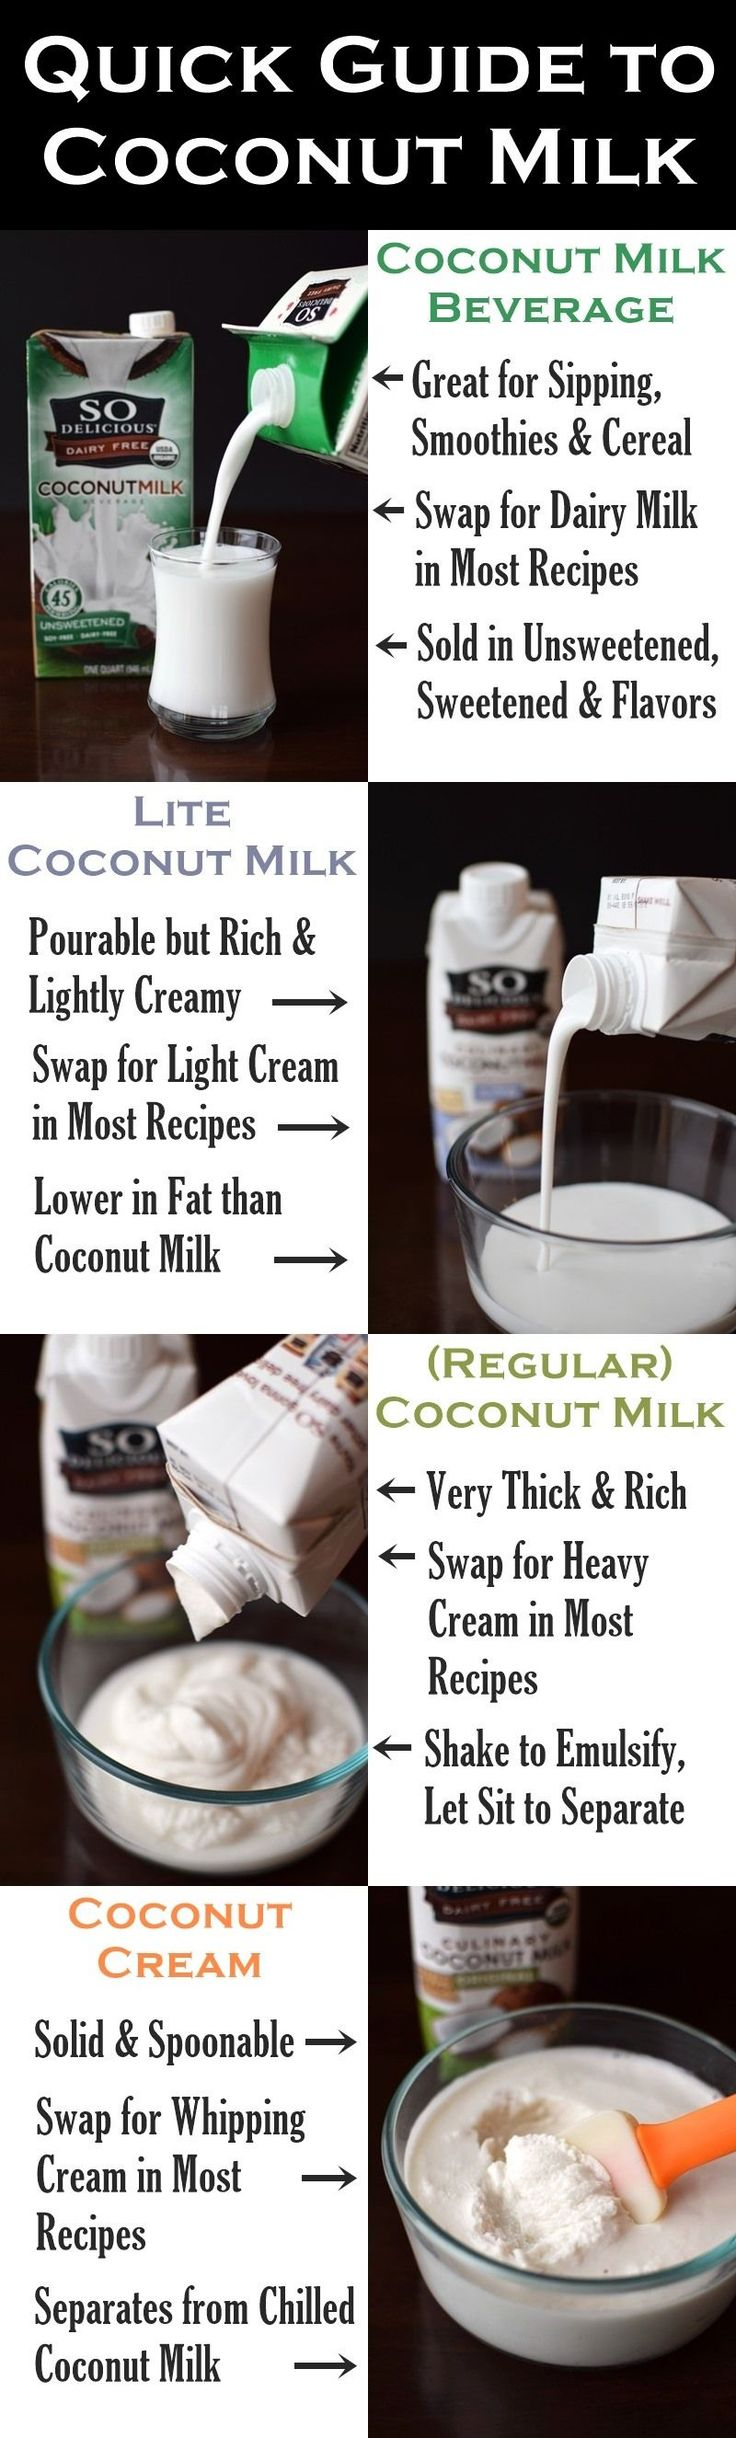 What is Coconut Milk: The Essential Quick Guide & Reference for Using Coconut Milk Beverage, Lite Coconut Milk, Coconut Milk & Coconut Cream